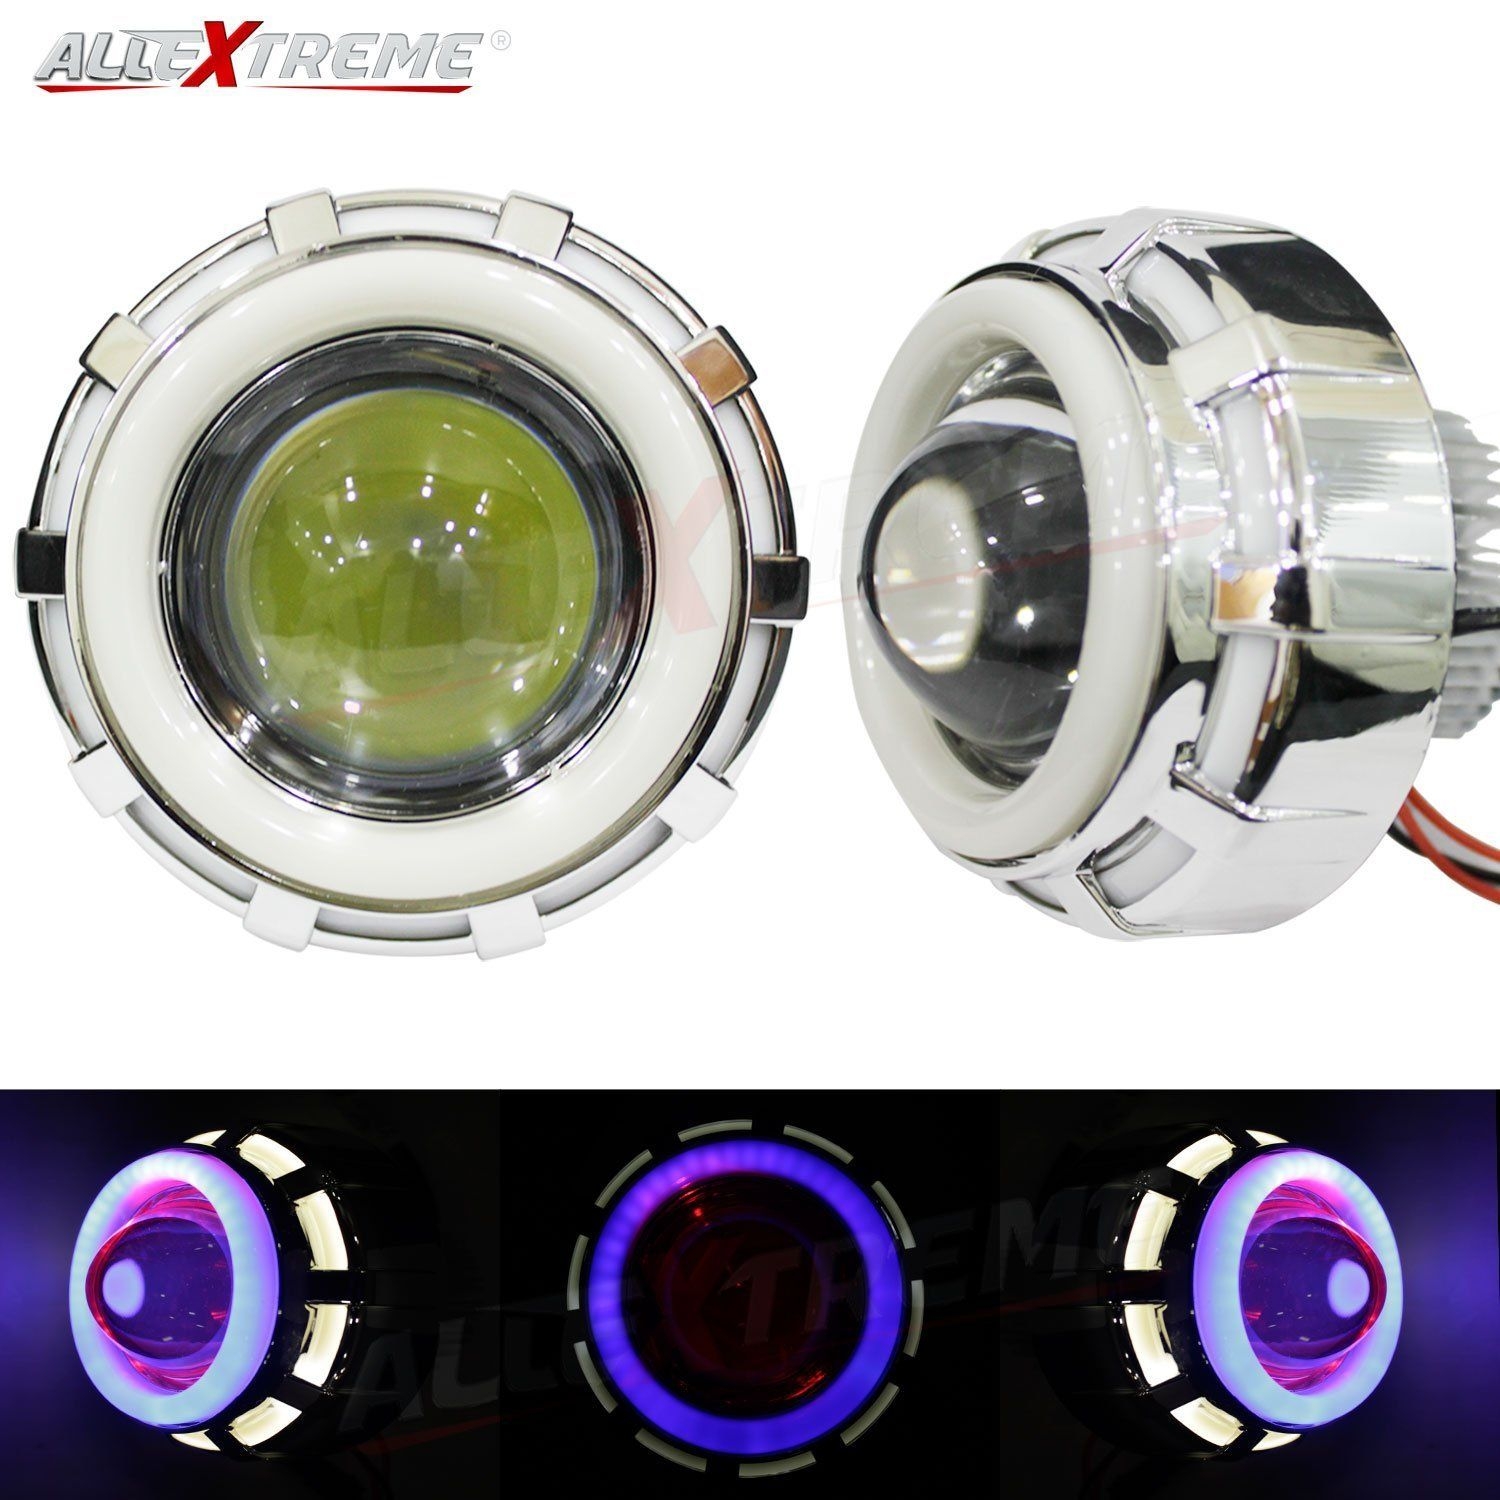 Allextreme Exdrpwb1 High Intensity Led Projector Lamp Stylish Dual Ring Cob Led Headlight With Hi Low Beam And Flas In 2020 Led Projector Led Headlights Projector Lamp